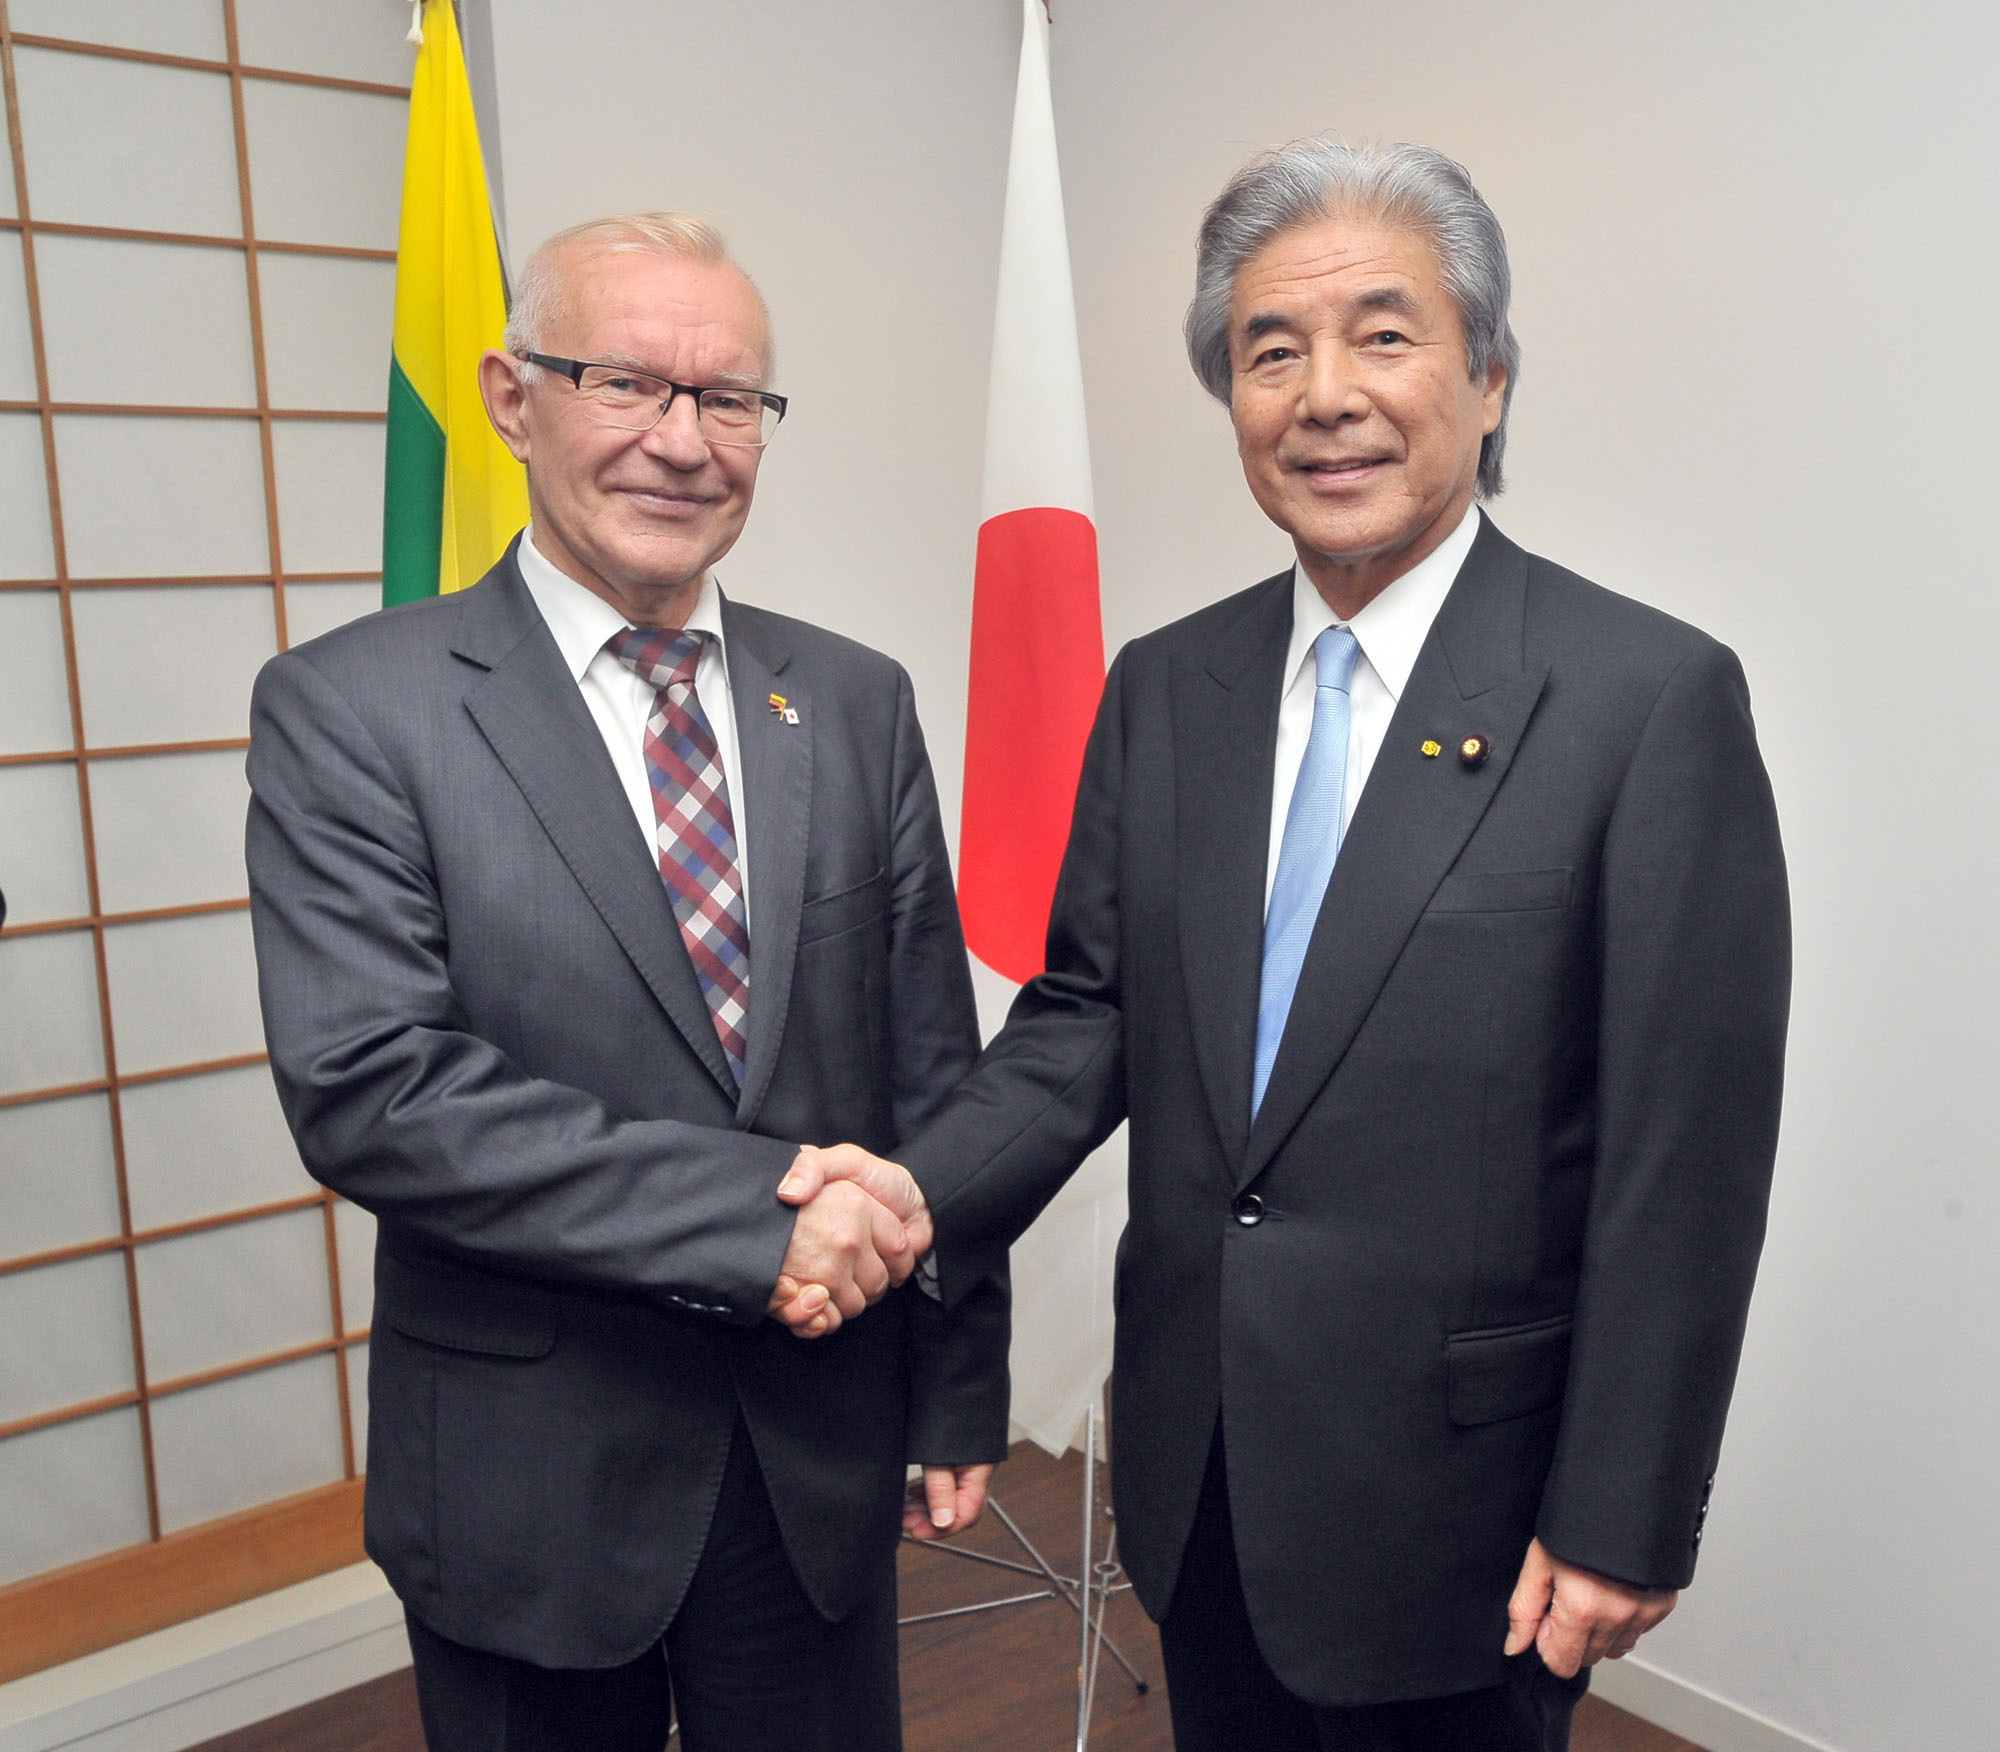 Lithuania's Vice Minister of Foreign Affairs Neris Germanas (left) joins Japan-Lithuania Parliamentary Friendship League Chairman Hirofumi Nakasone, during a reception celebrating the 25th anniversary of the re-establishment of diplomatic relations between Lithuania and Japan at the Lithuanian Embassy in Tokyo on Oct. 17. | YOSHIAKI MIURA